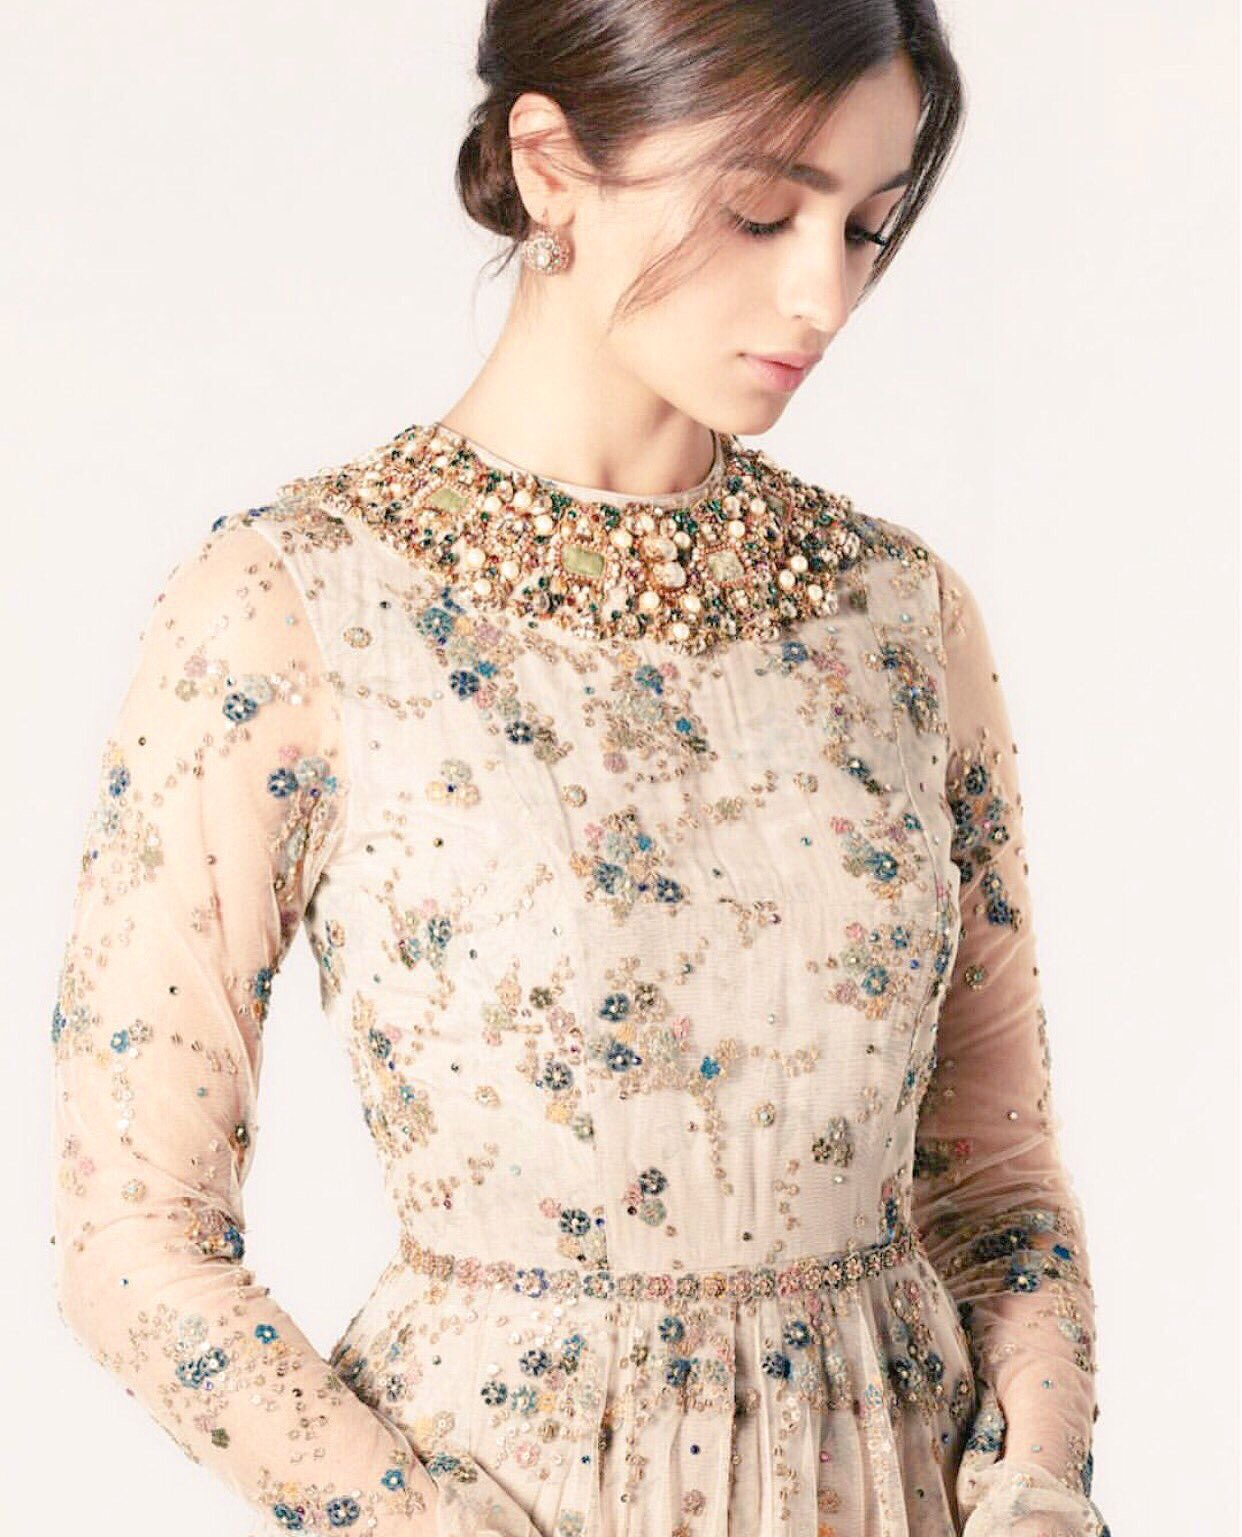 Happy Birthday Gorgeous Alia Bhatt!  May god gives you more and more success! Keep shinning bright.